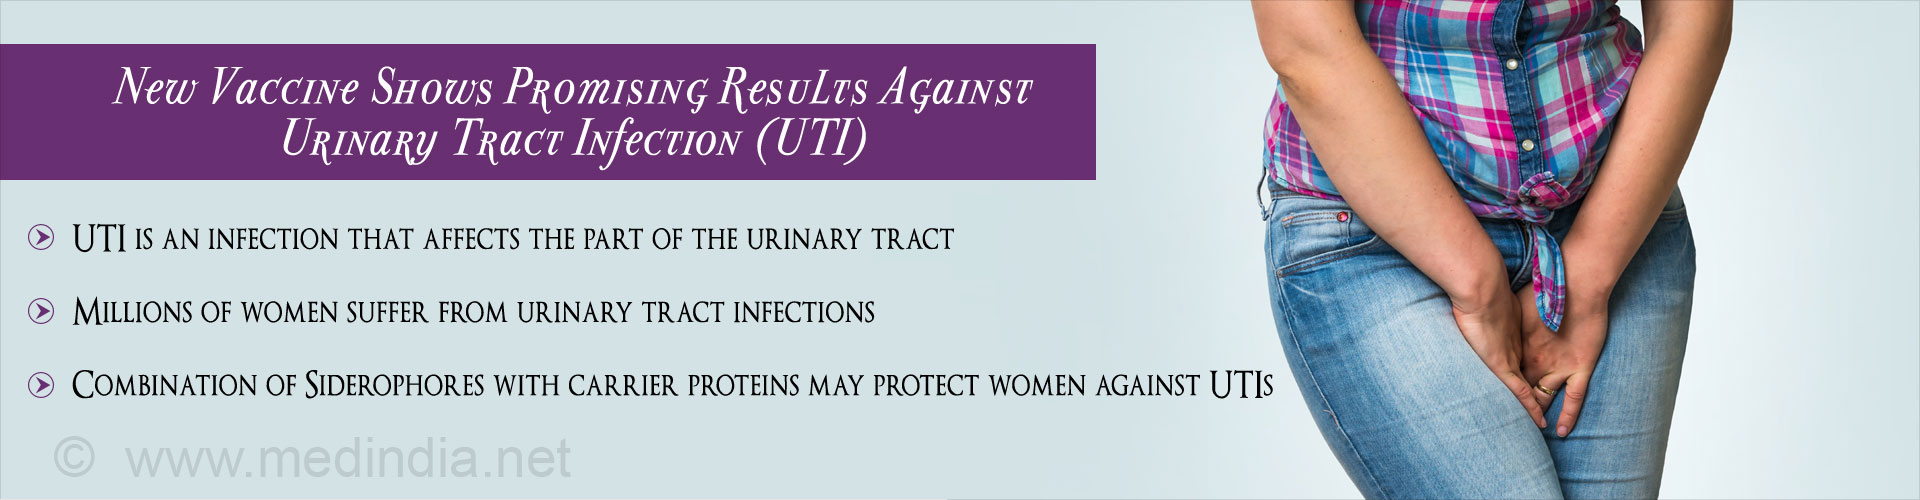 New Vaccine Offers Hope For Treating Urinary Tract Infection (UTI) In Women